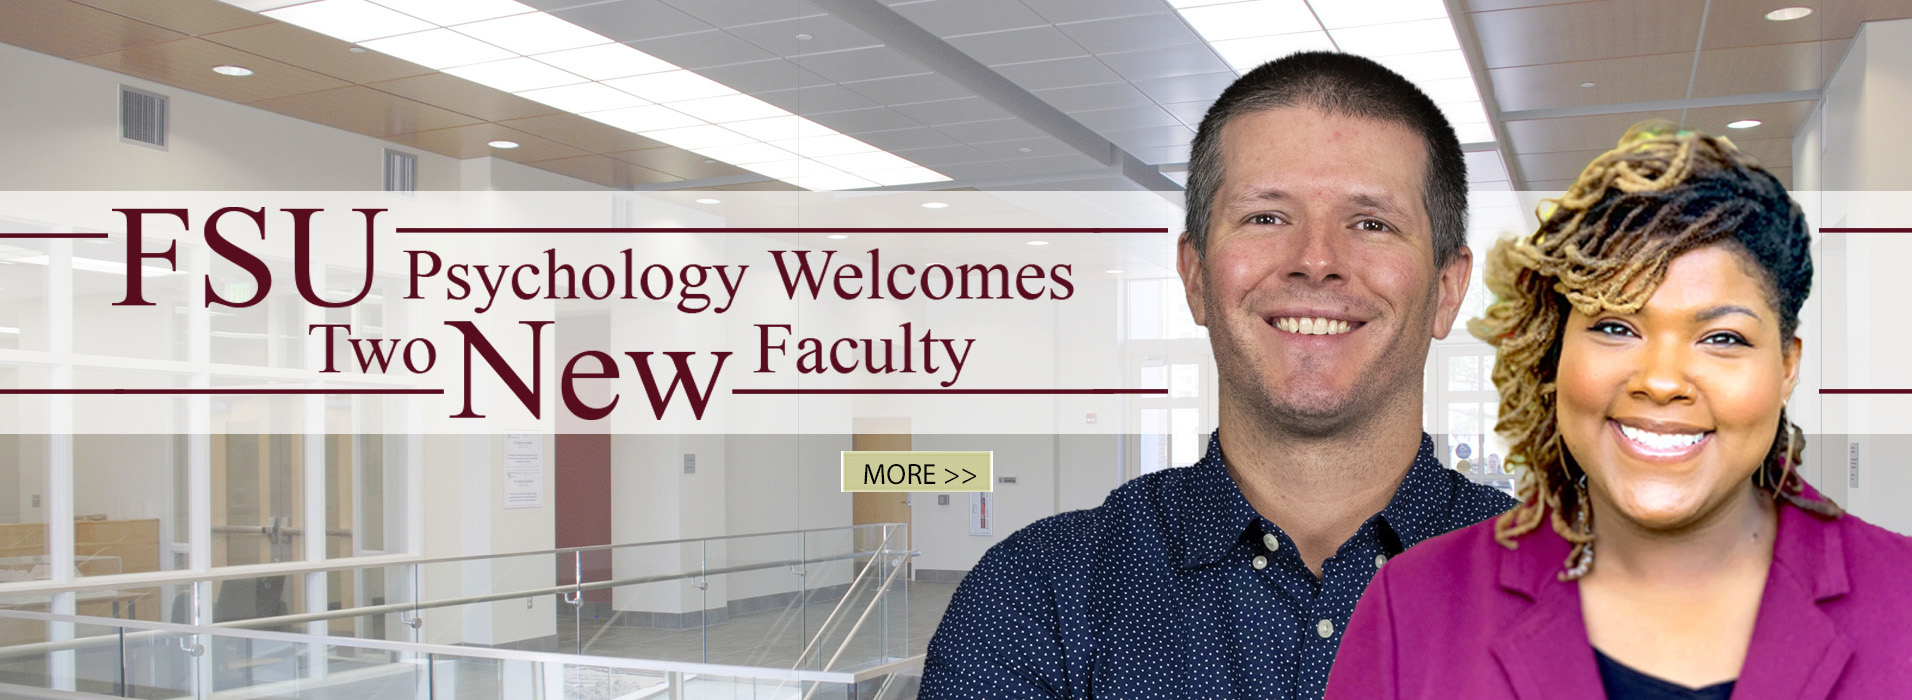 The Psychology Department is pleased to announce the addition of two faculty members for the 2020-2021 academic year.